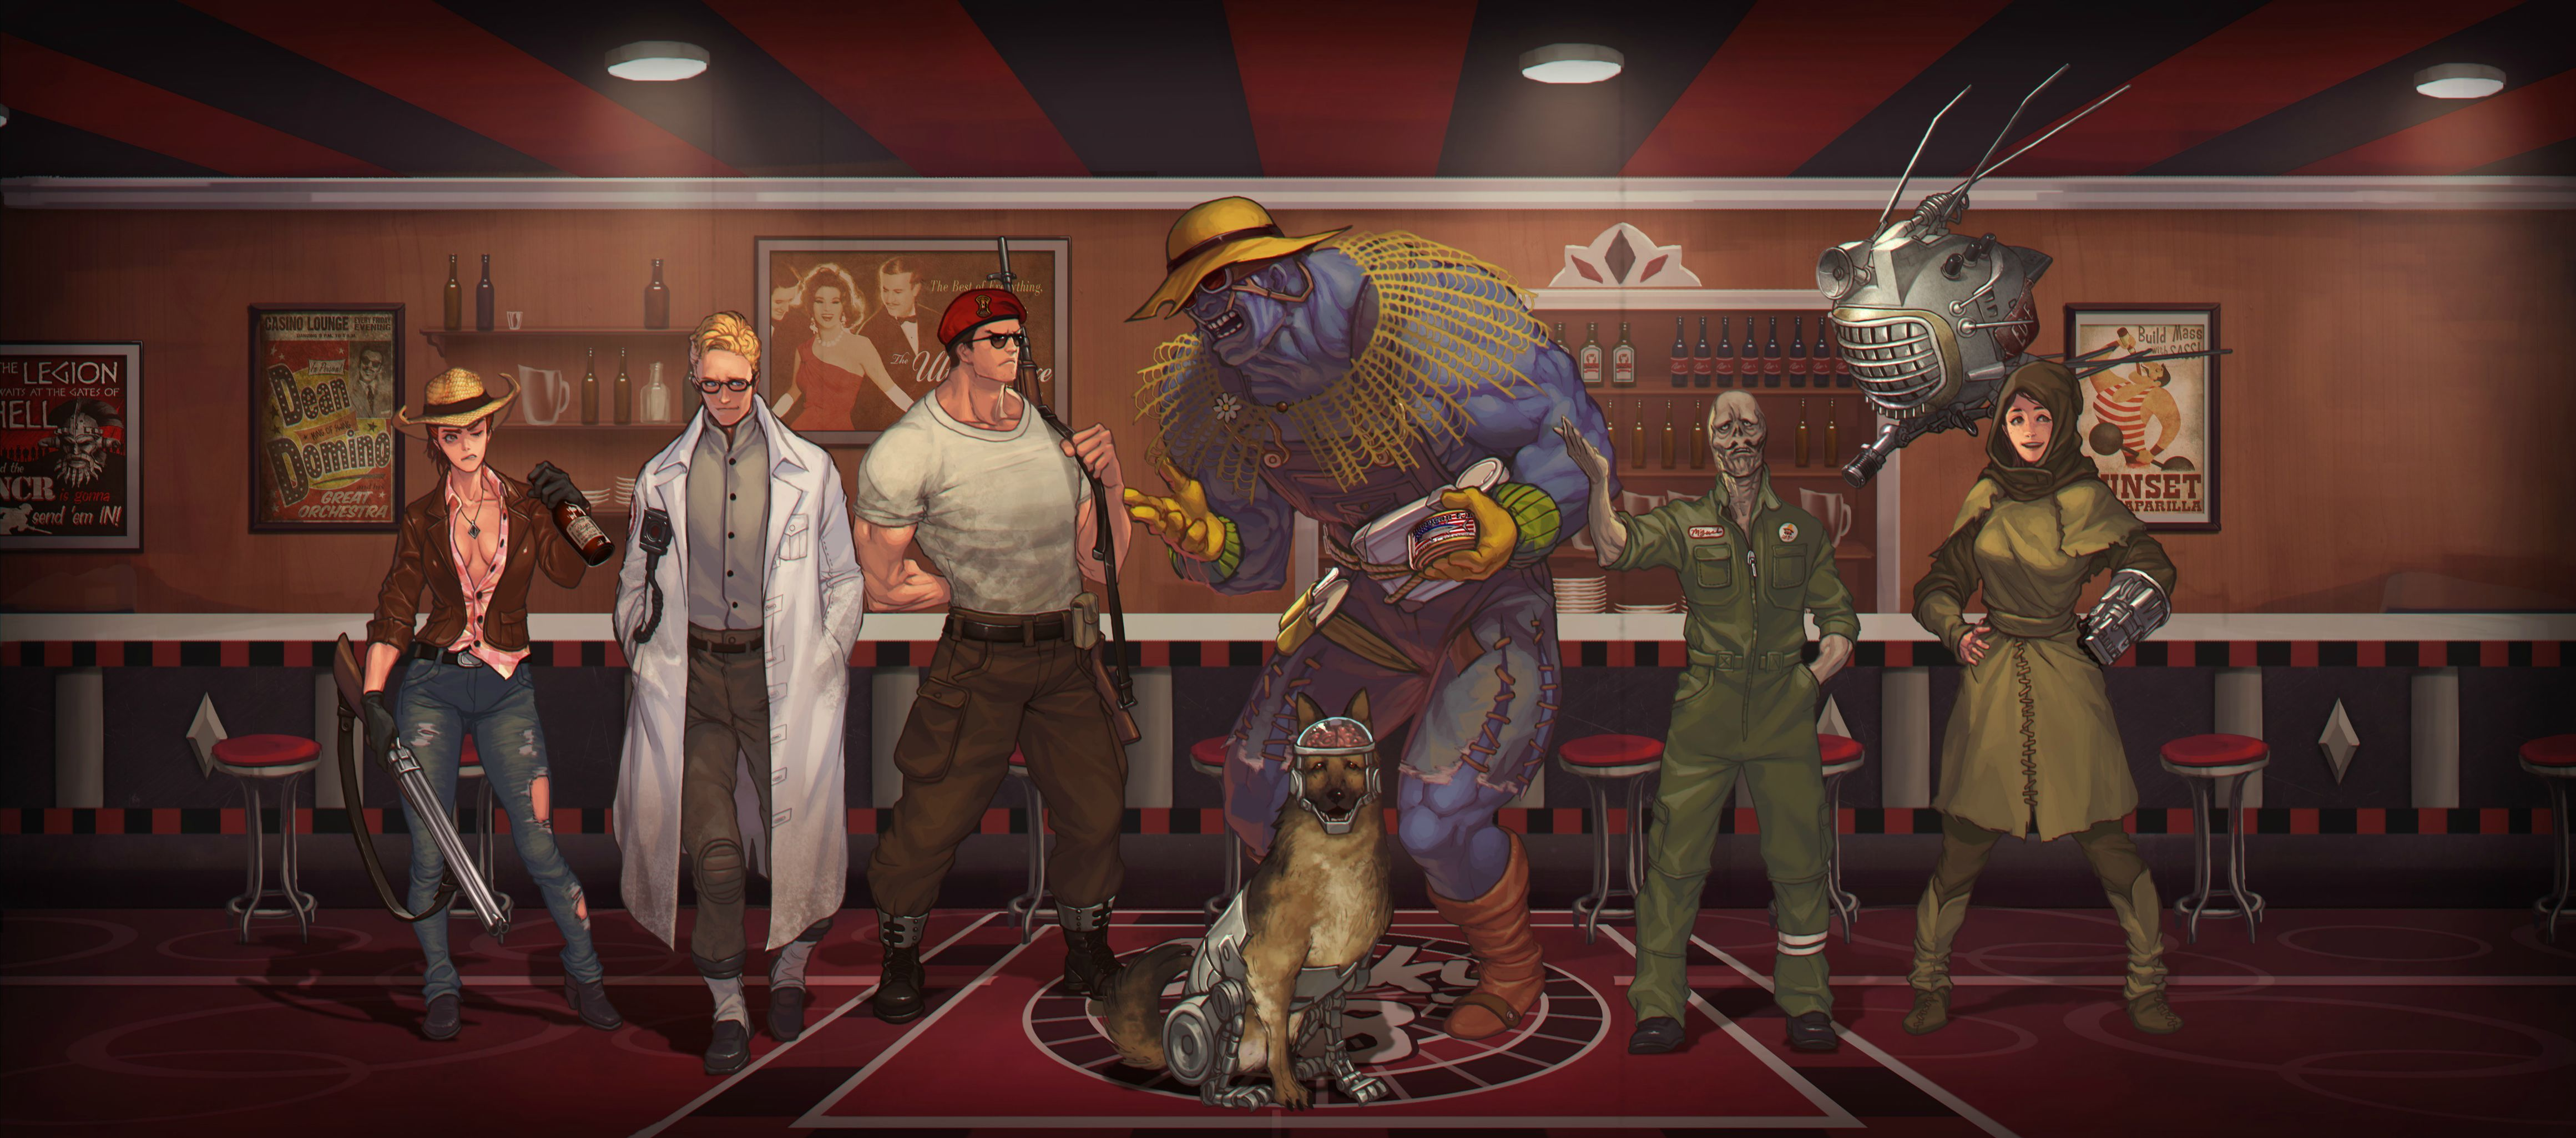 Fallout Nv Wallpapers Top Free Fallout Nv Backgrounds